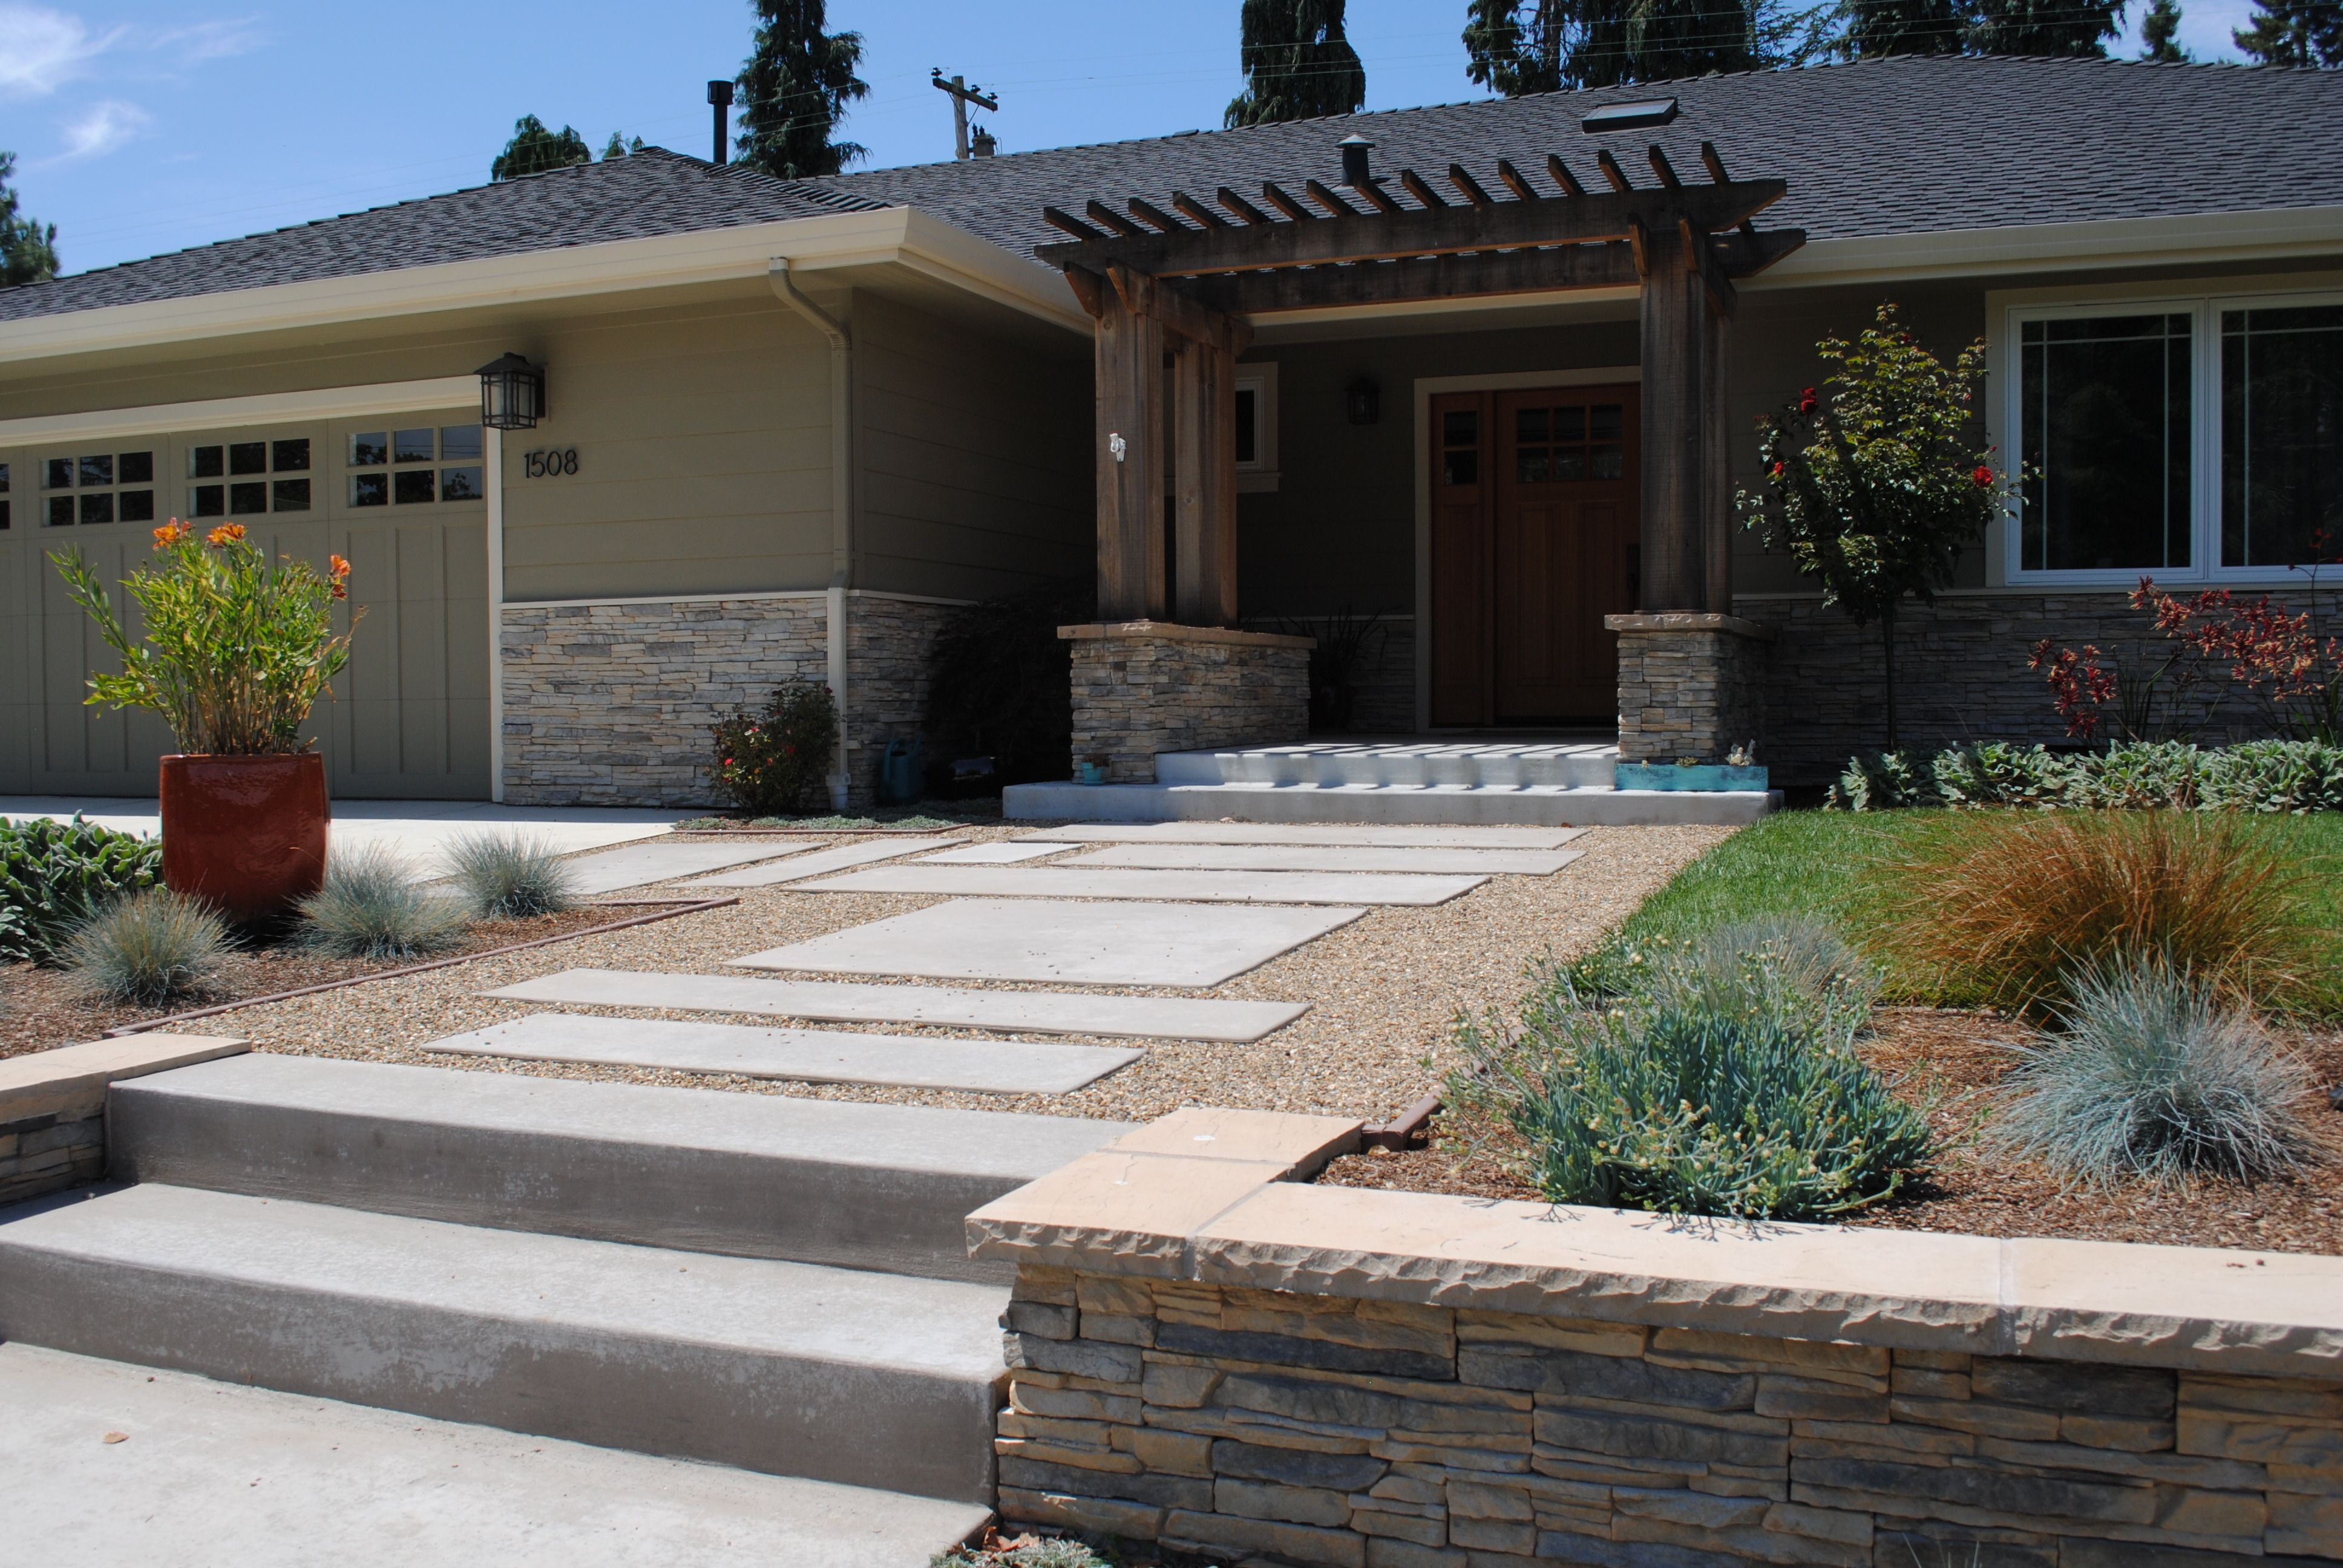 Low Maintenance Front Yard Ideas | Mountain View Stone ... on Concrete Front Yard Ideas id=34134